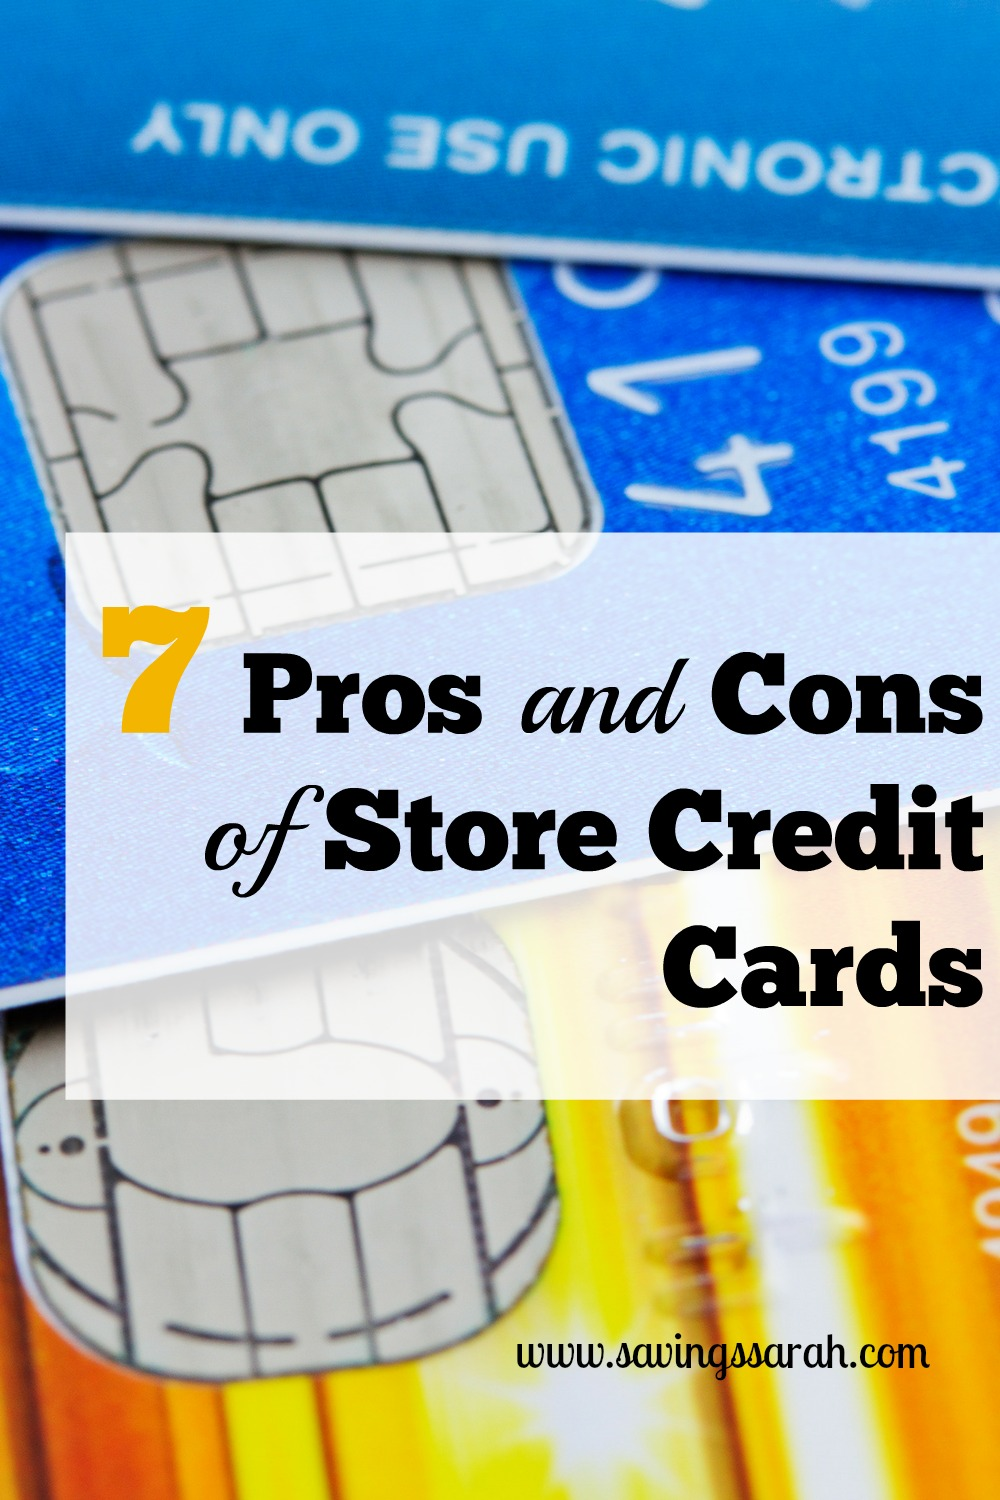 pros and cons for credit card Nearly 70% of millennials prefer debit to credit cards, according to a 2015 report from chime, and transunion reports they have fewer bank-issued and private label cards than older generations.